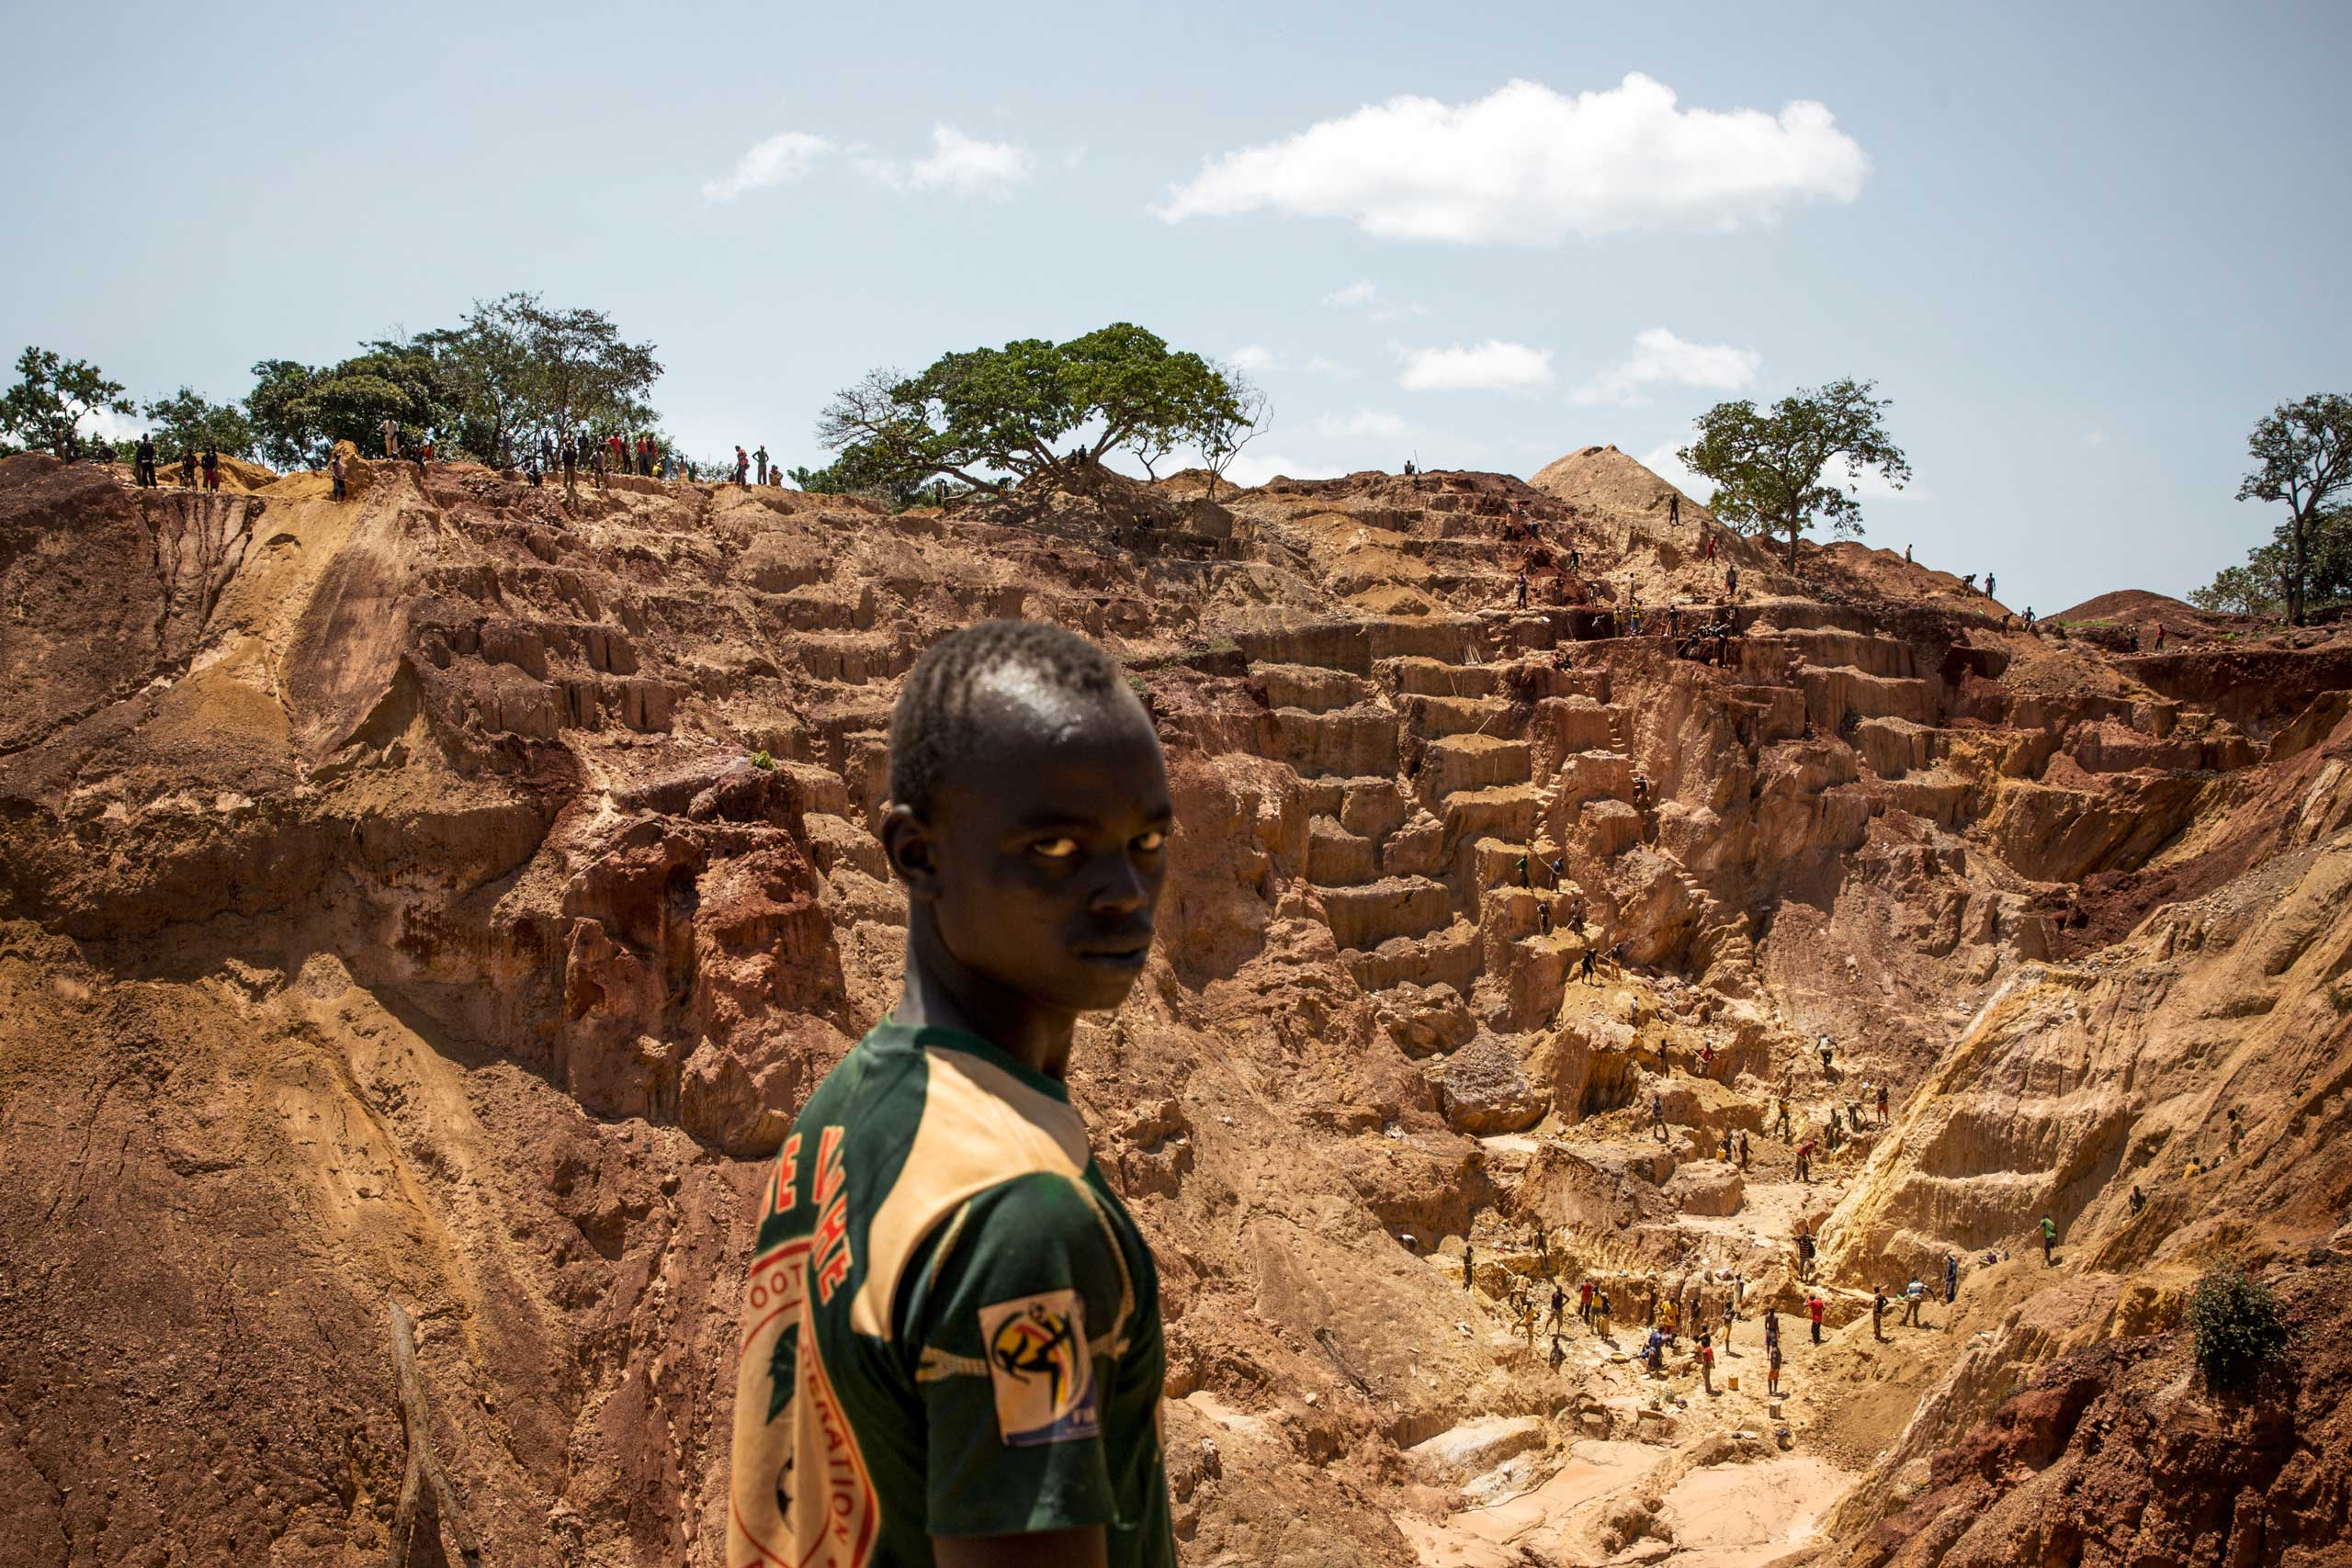 A man at the Ndassima gold mine, which was run by Aurafrique, a subsidiary of the Canadian company Axmin, before Seleka rebels managed to take over the site. Central African Republic, Sept. 23, 2014.